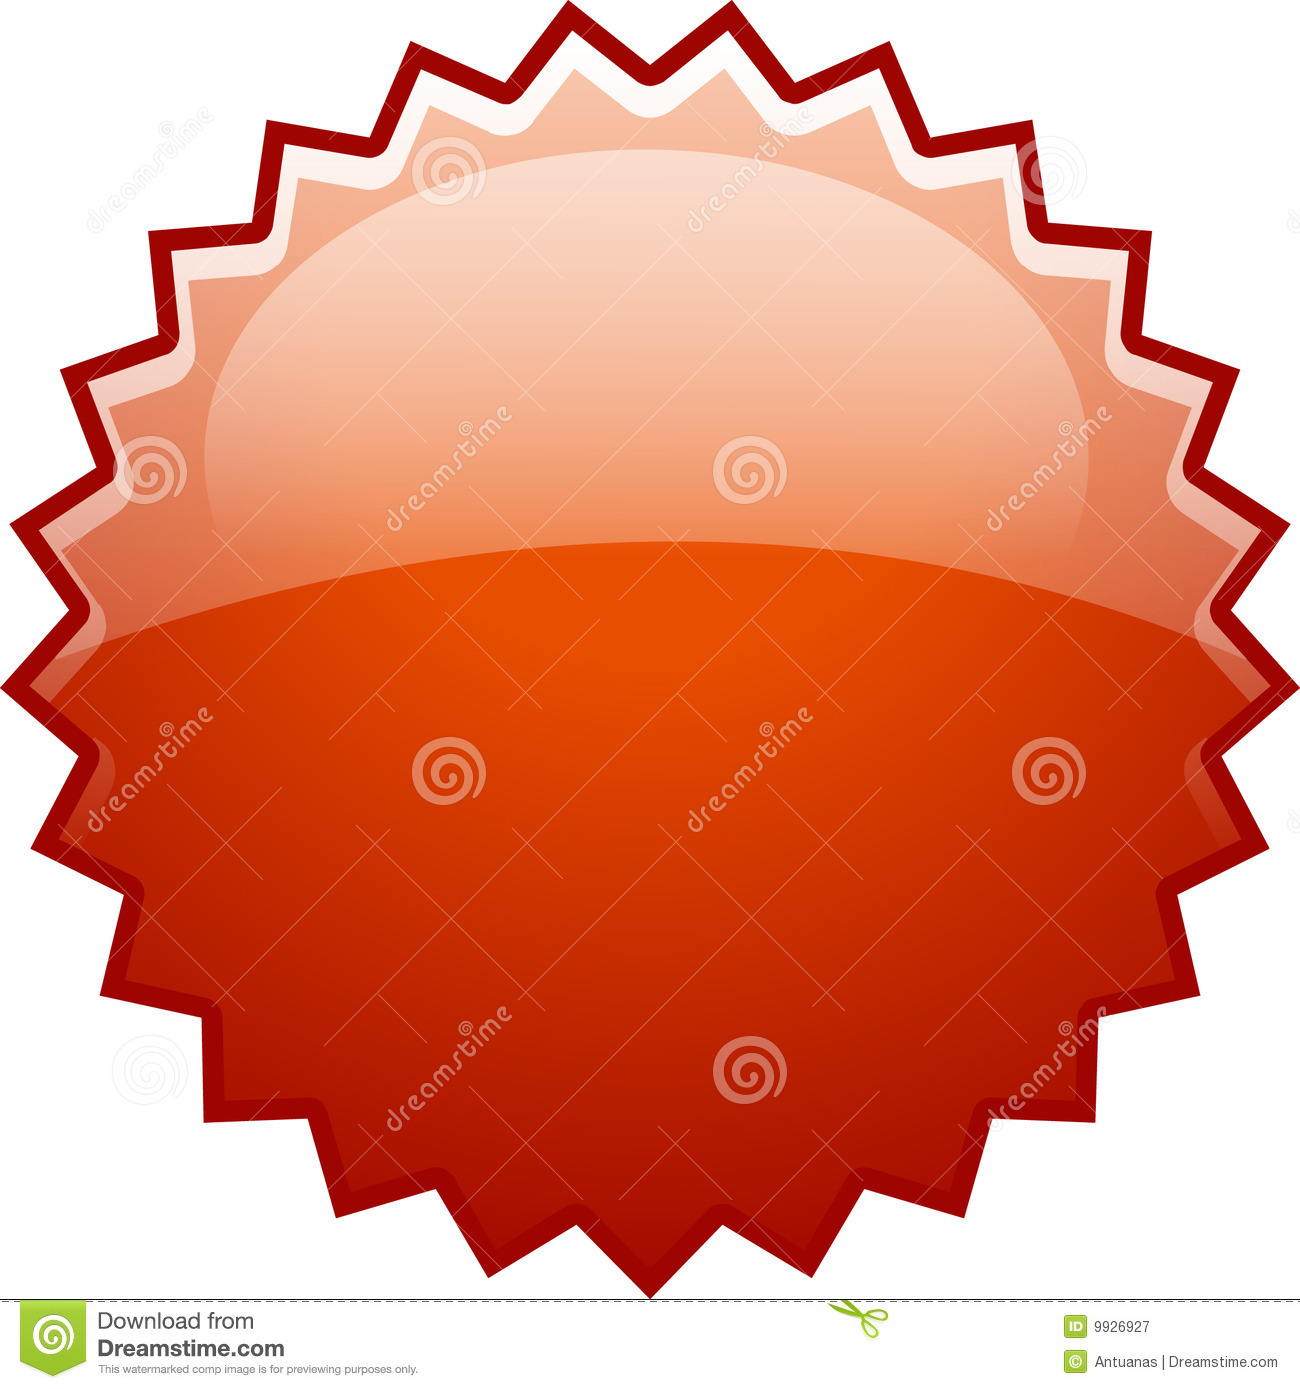 All graphics newest royalty free stock photos stock illustrations - Red Splash Boom New Royalty Free Stock Photography